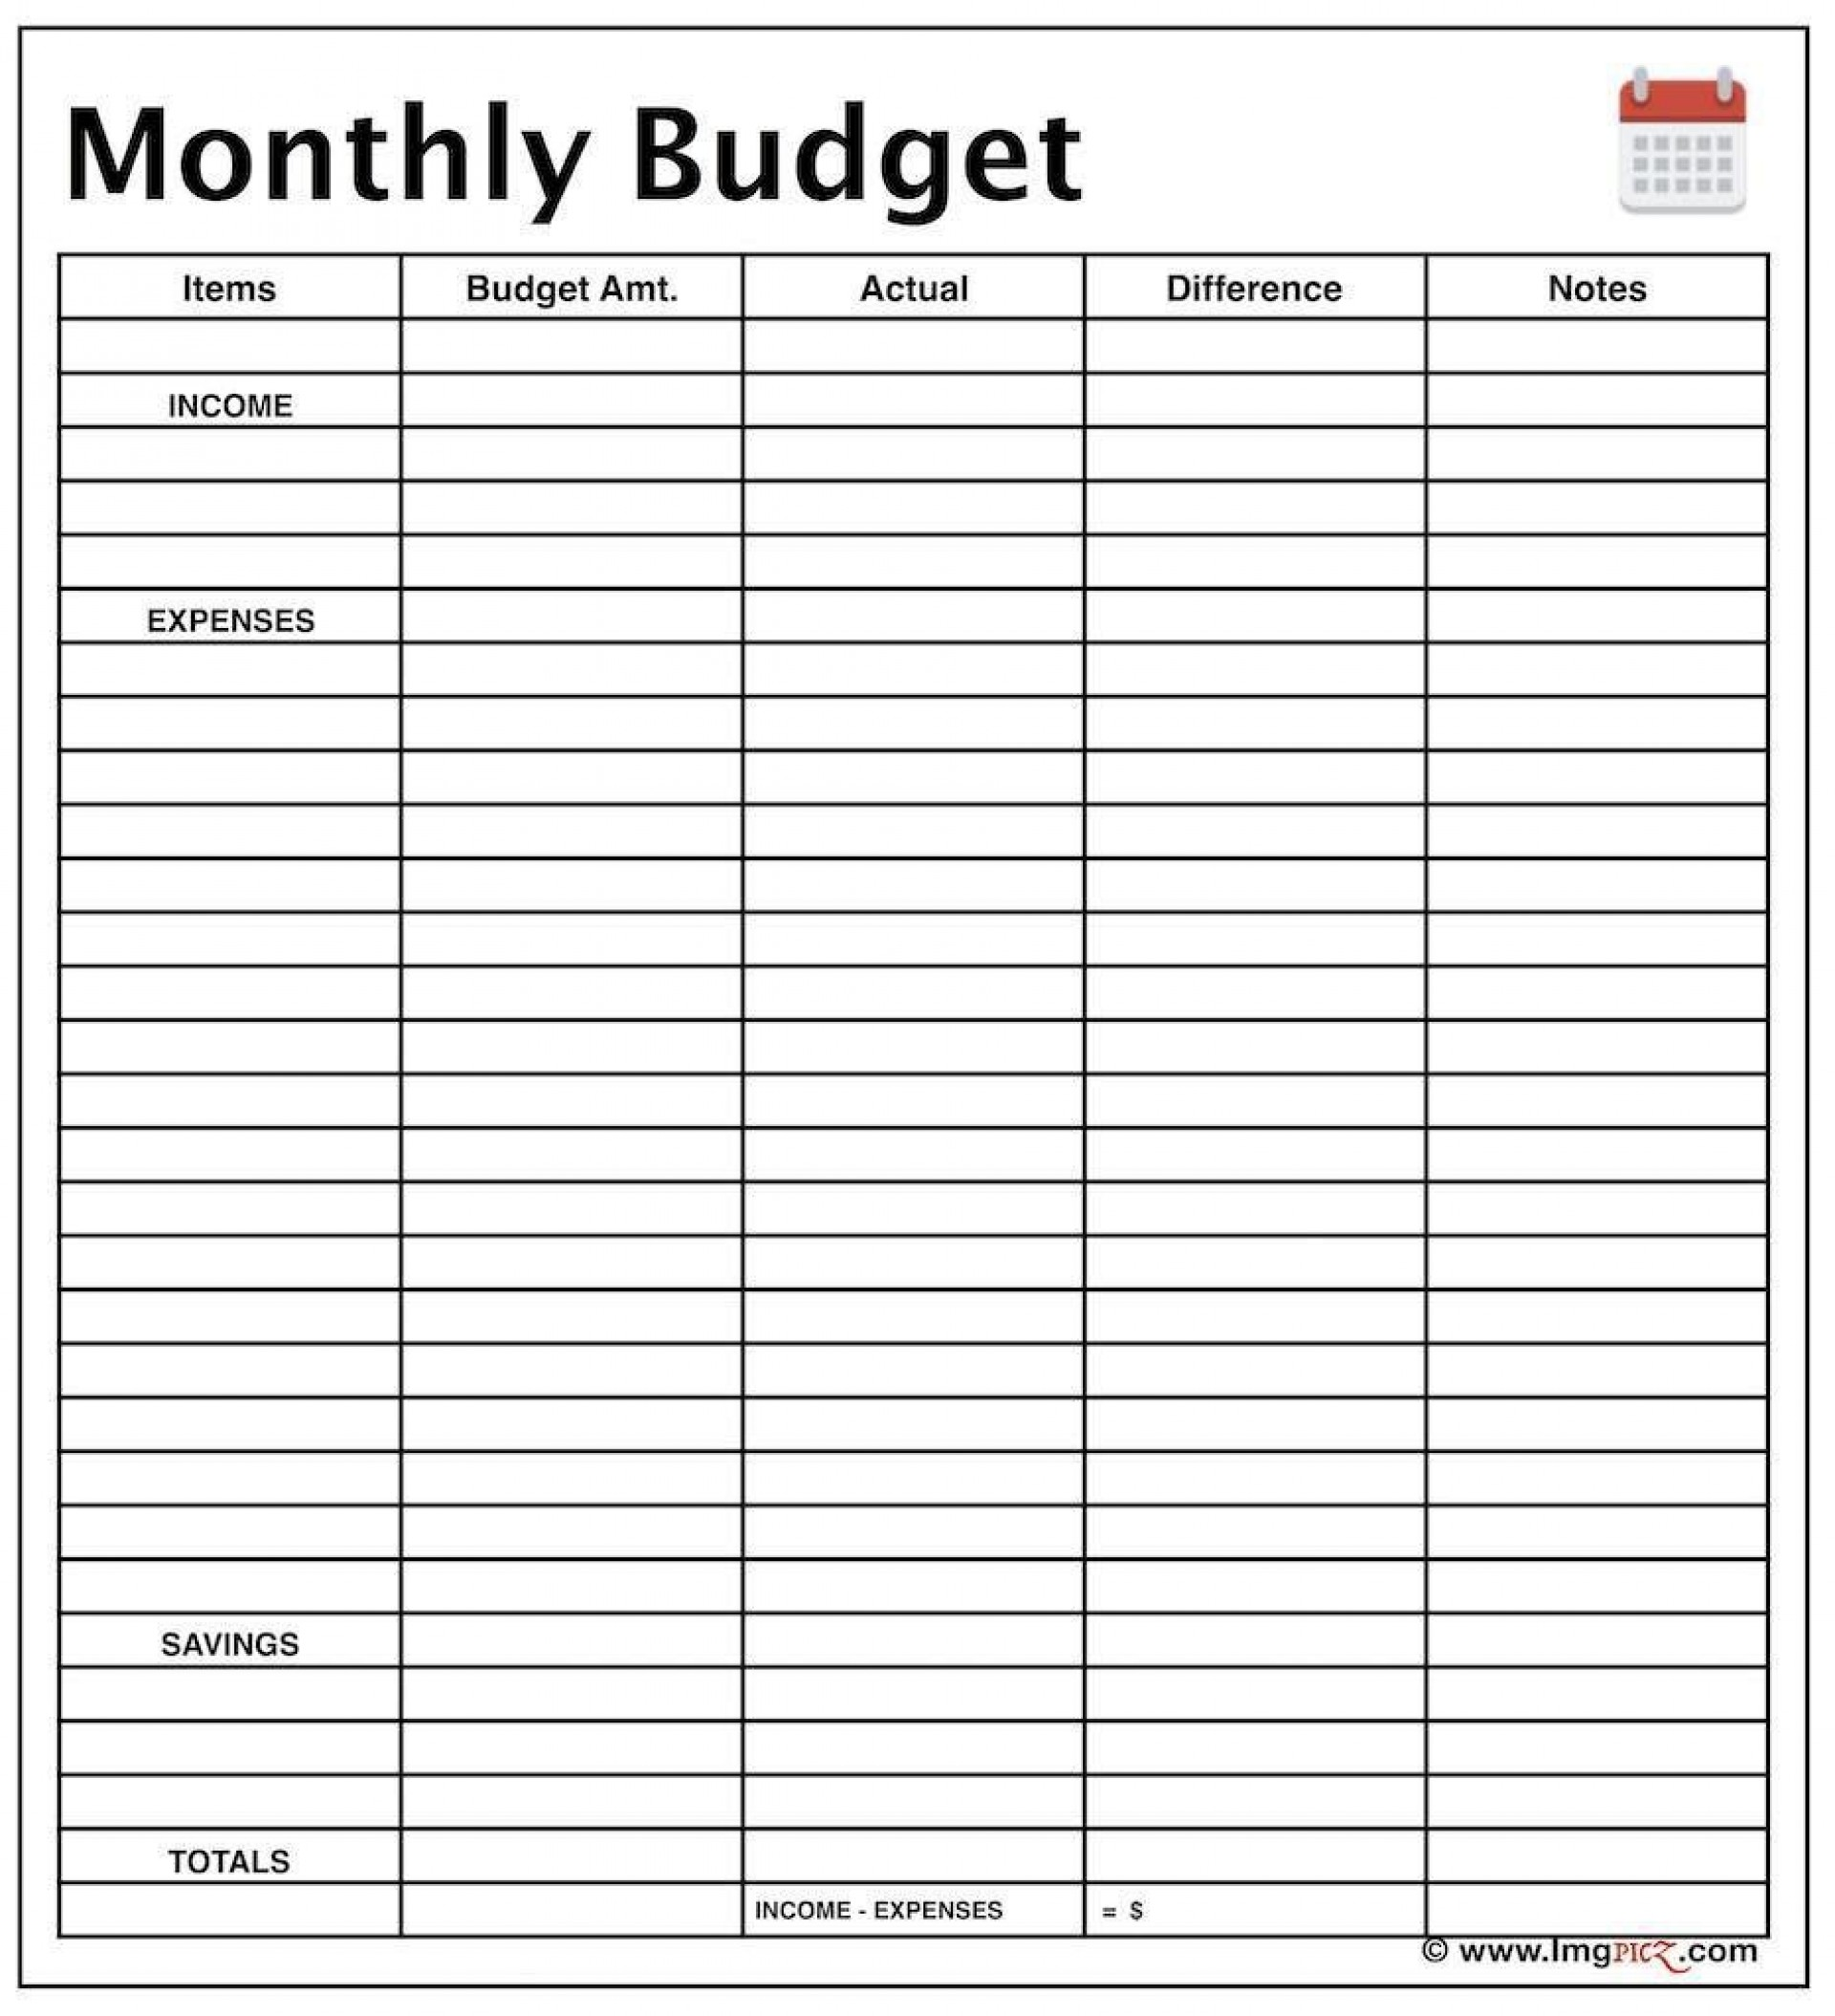 003 Rare Indian Monthly Budget Excel Spreadsheet Template High Resolution 1920